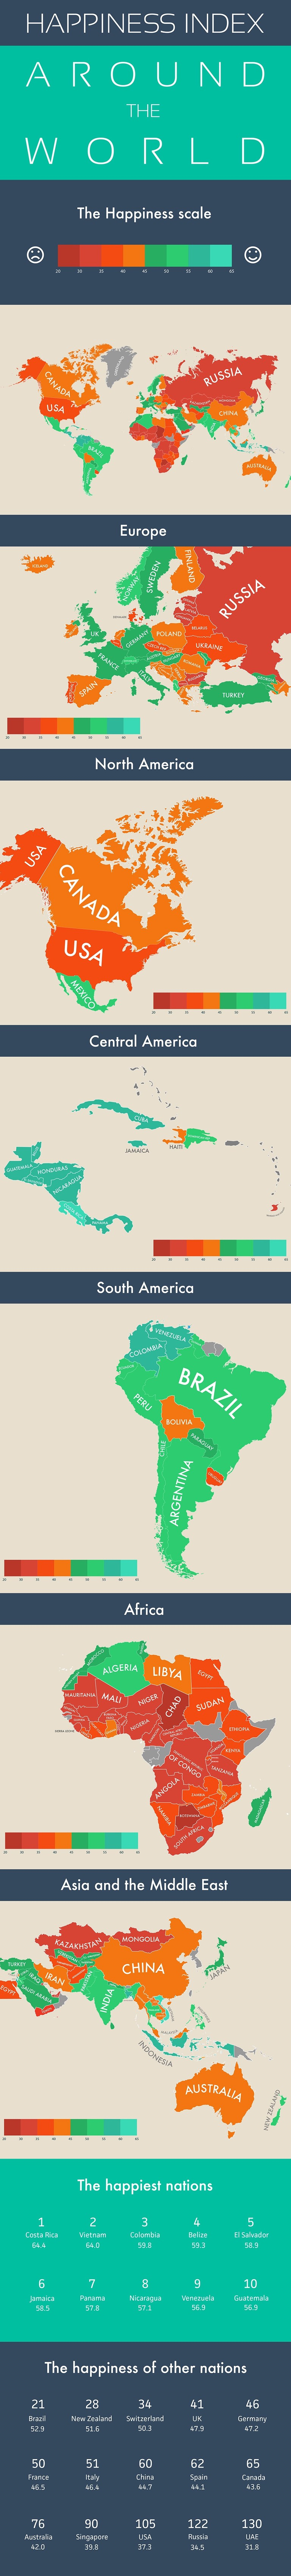 Maps showing the happiness level of countries across the world